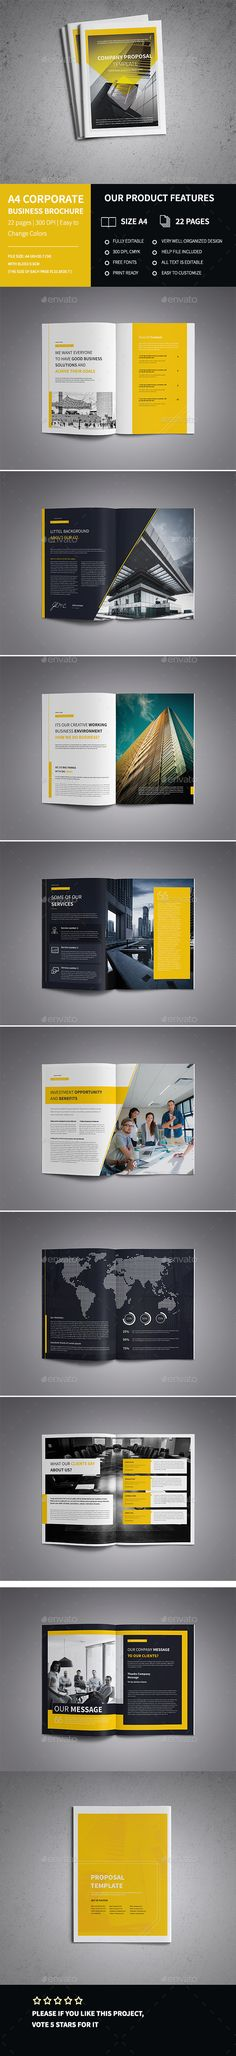 Architecture Brochure Brochures, Brochure template and Architecture - advertising brochure template